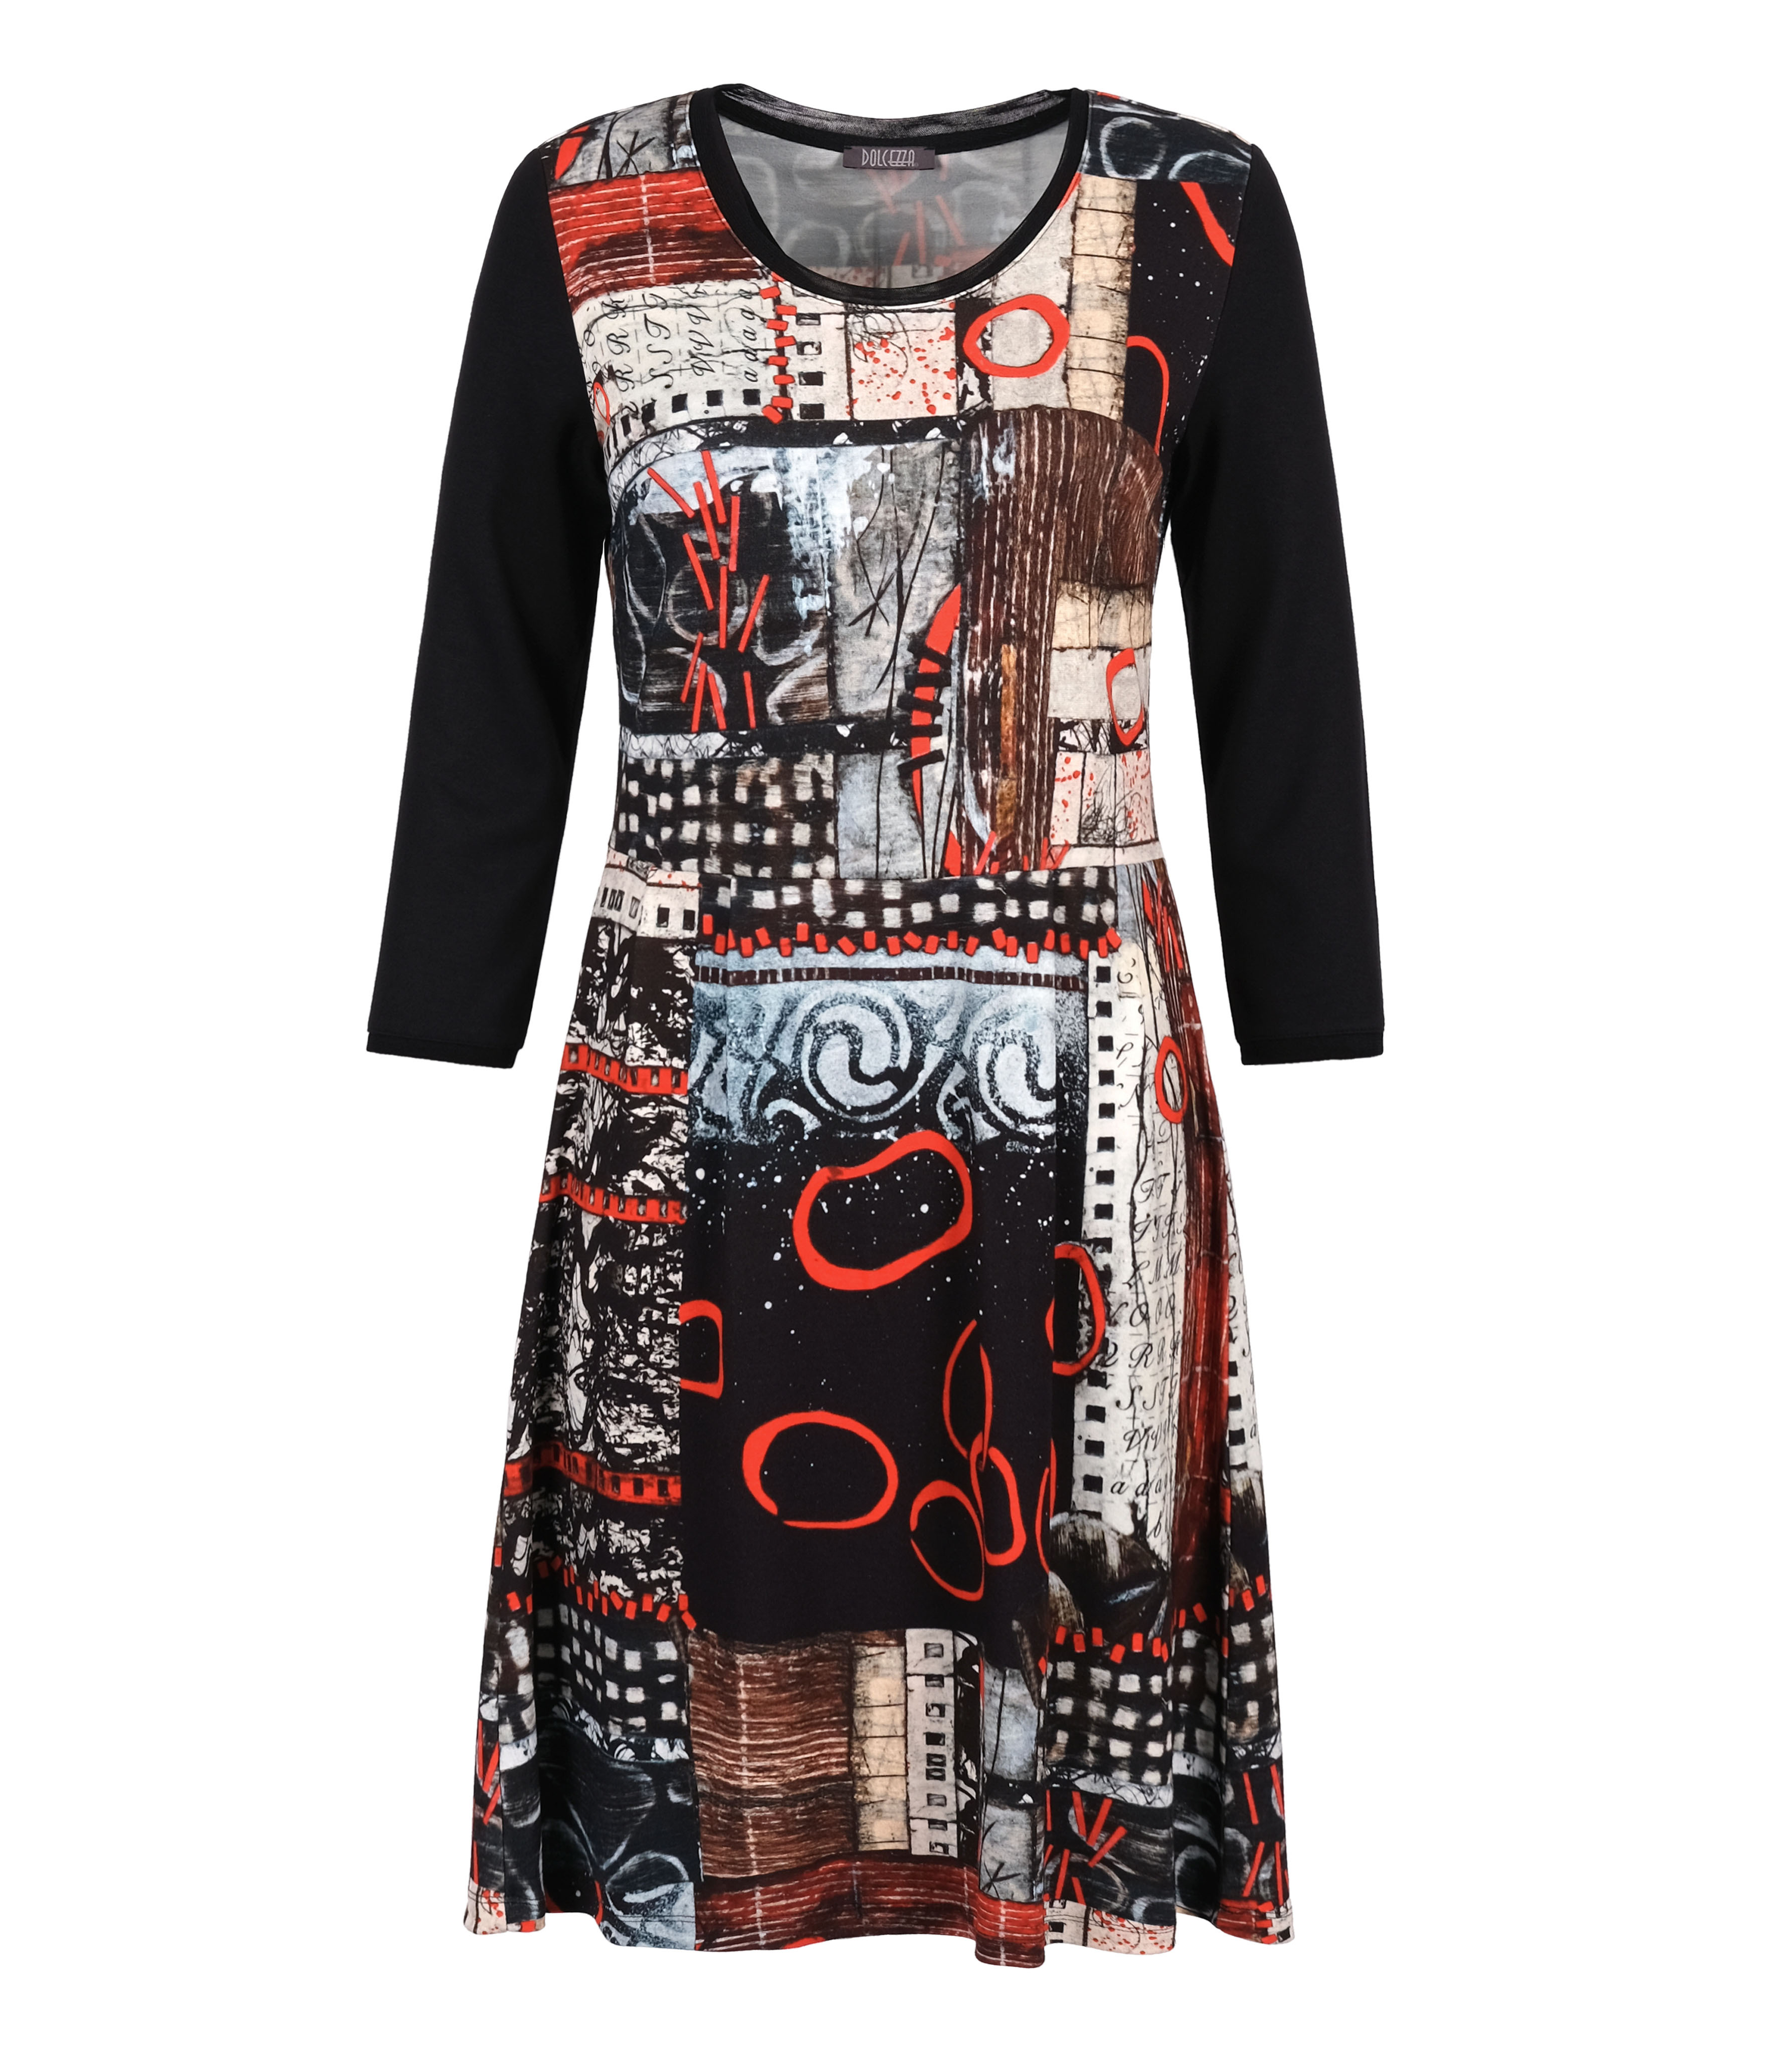 Simply Art Dolcezza: Rising Up In Color Flared Abstract Art Dress (1 Available at Special Price!) Dolcezza_SimplyArt_70715_N